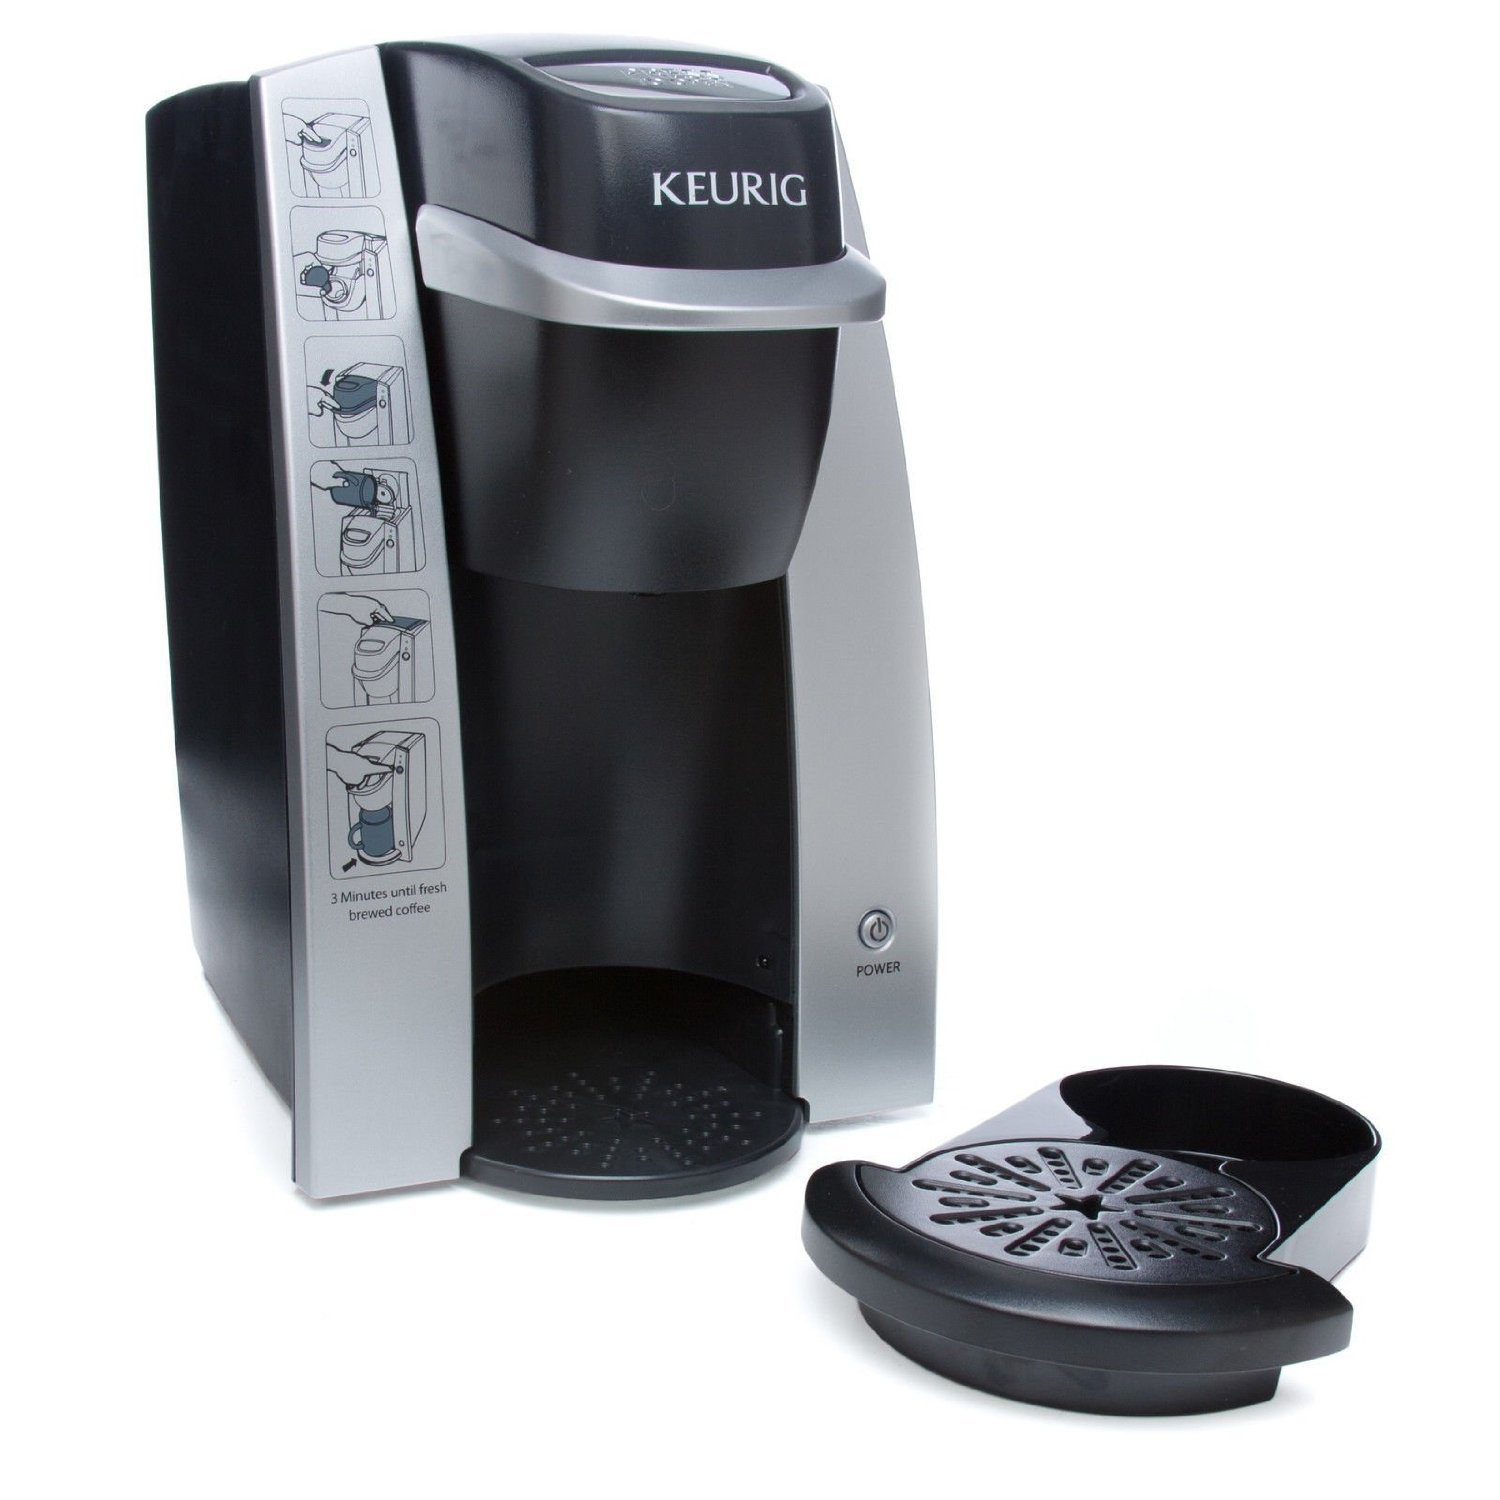 Keurig K-Cup In Room Brewing System, 11.1 x 10-Inches by Keurig